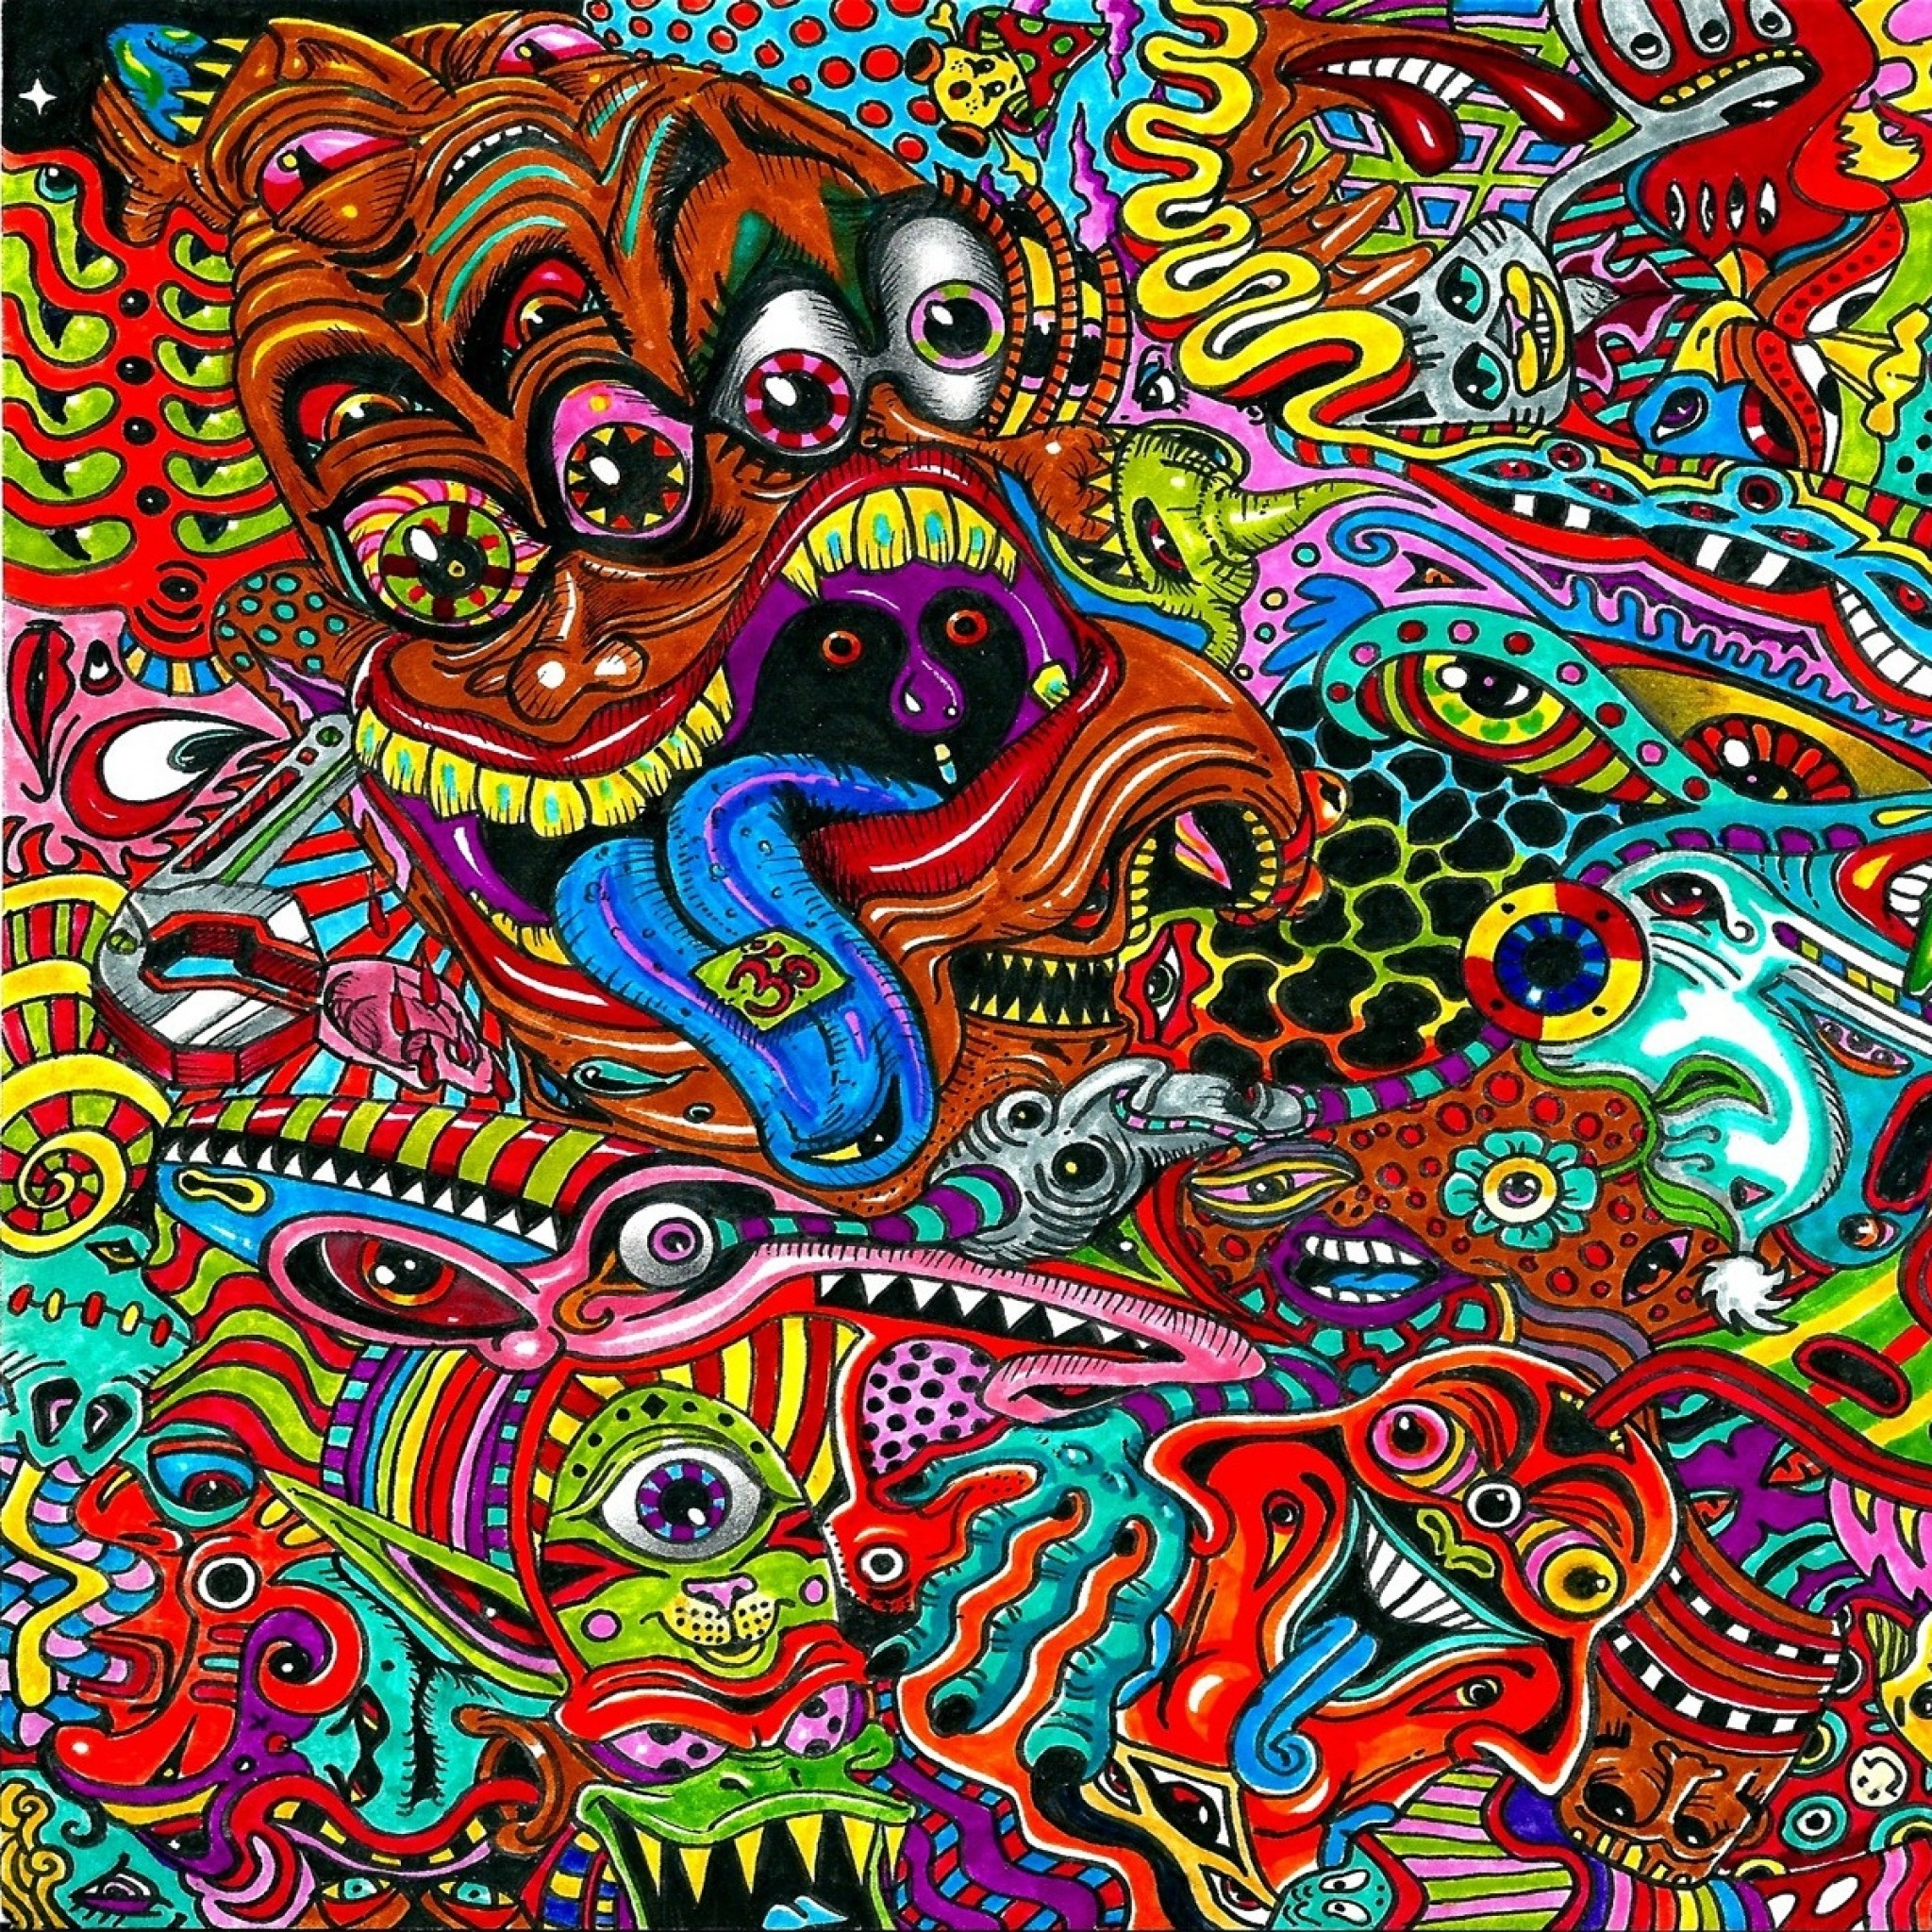 Psychedelic Backgrounds (69+ images)